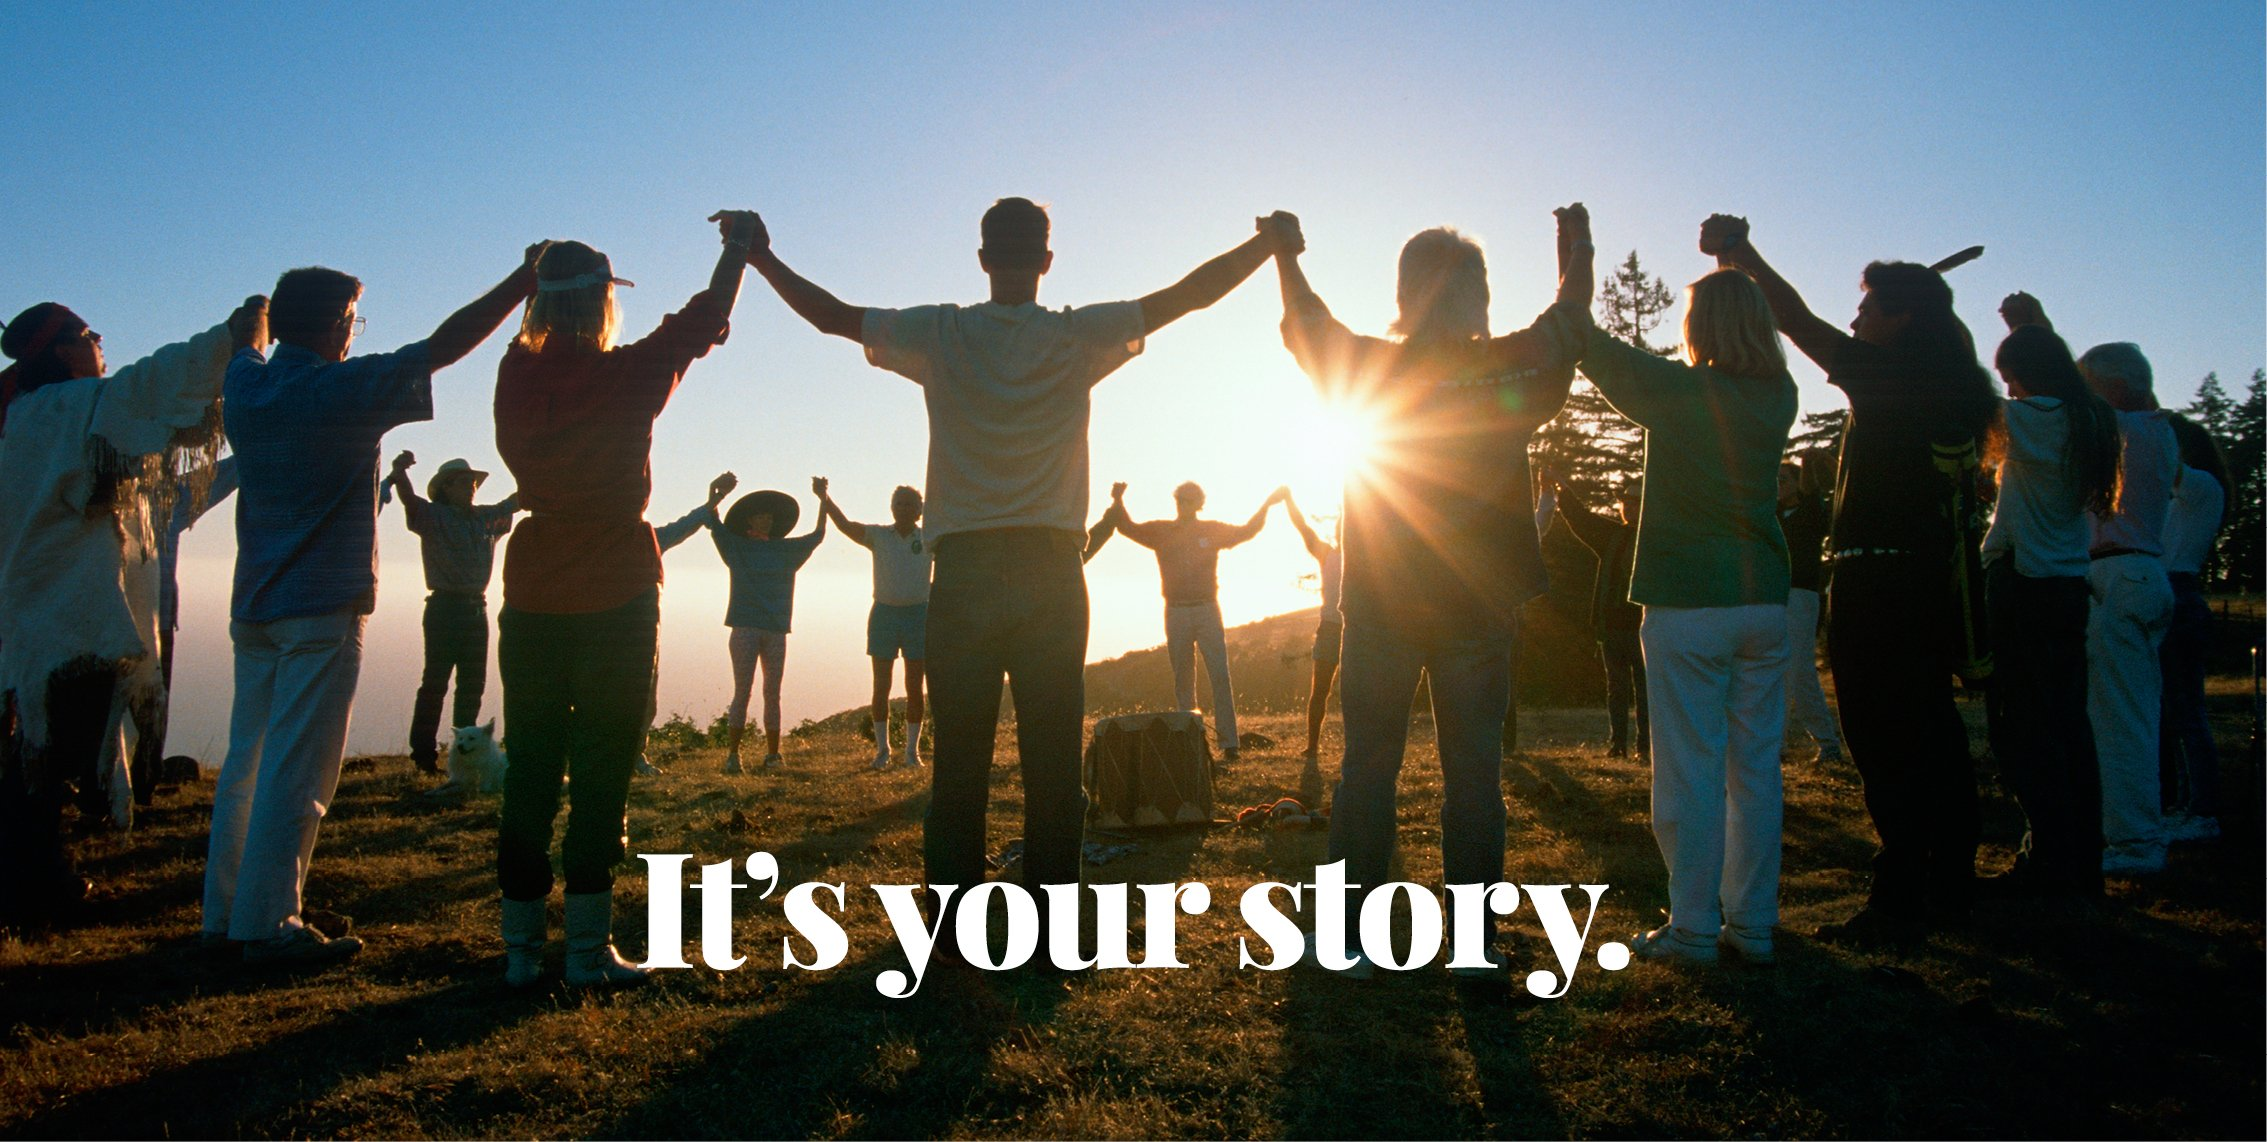 its' your story